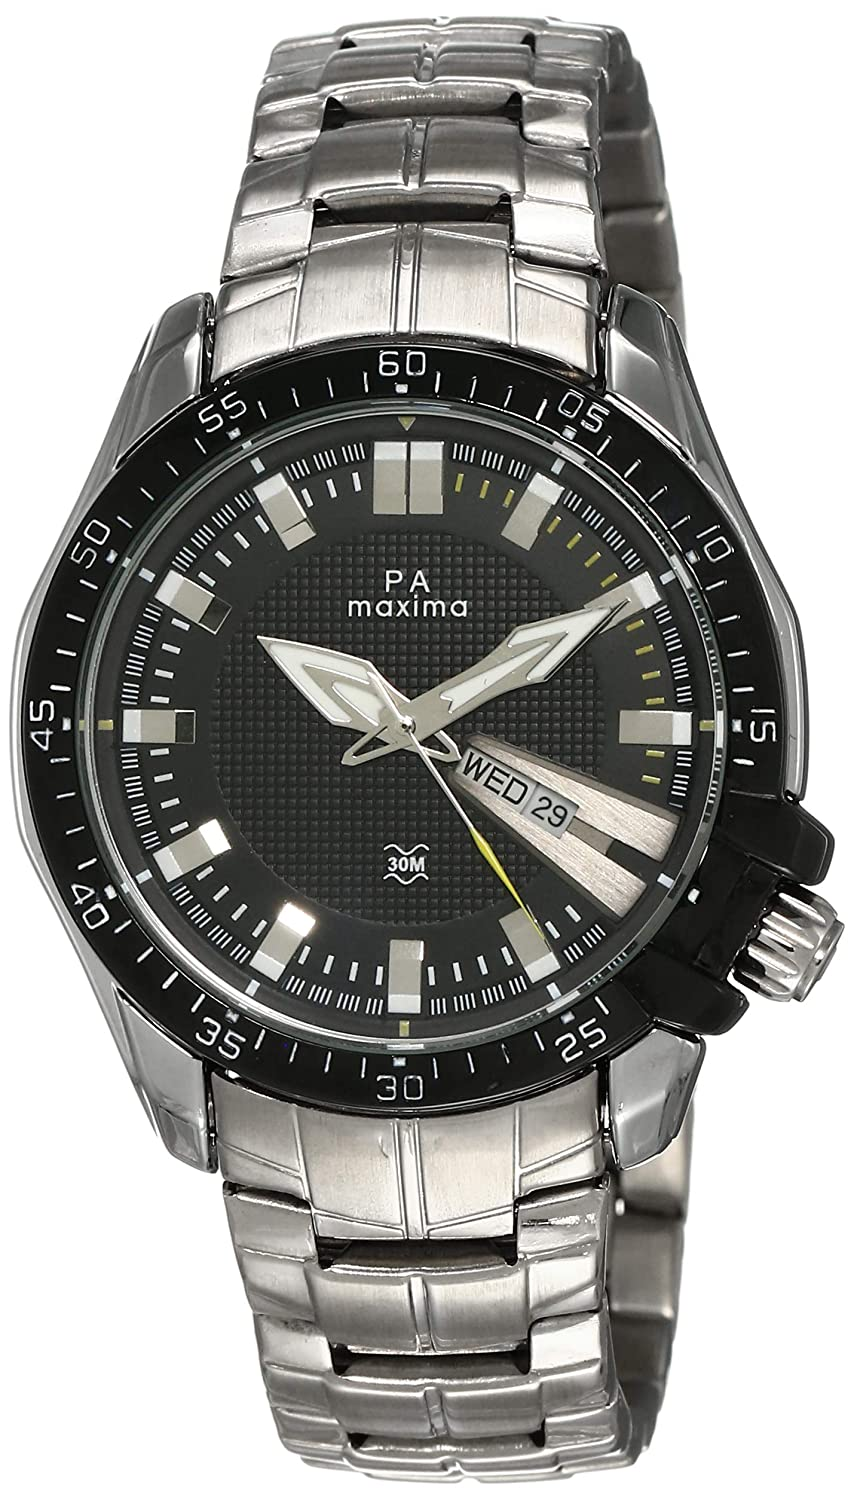 Maxima Attivo Day-Date Black Dial Best Mens Watches Under 5000 in India to buy in 2019 - Reviews & Buyers Guide